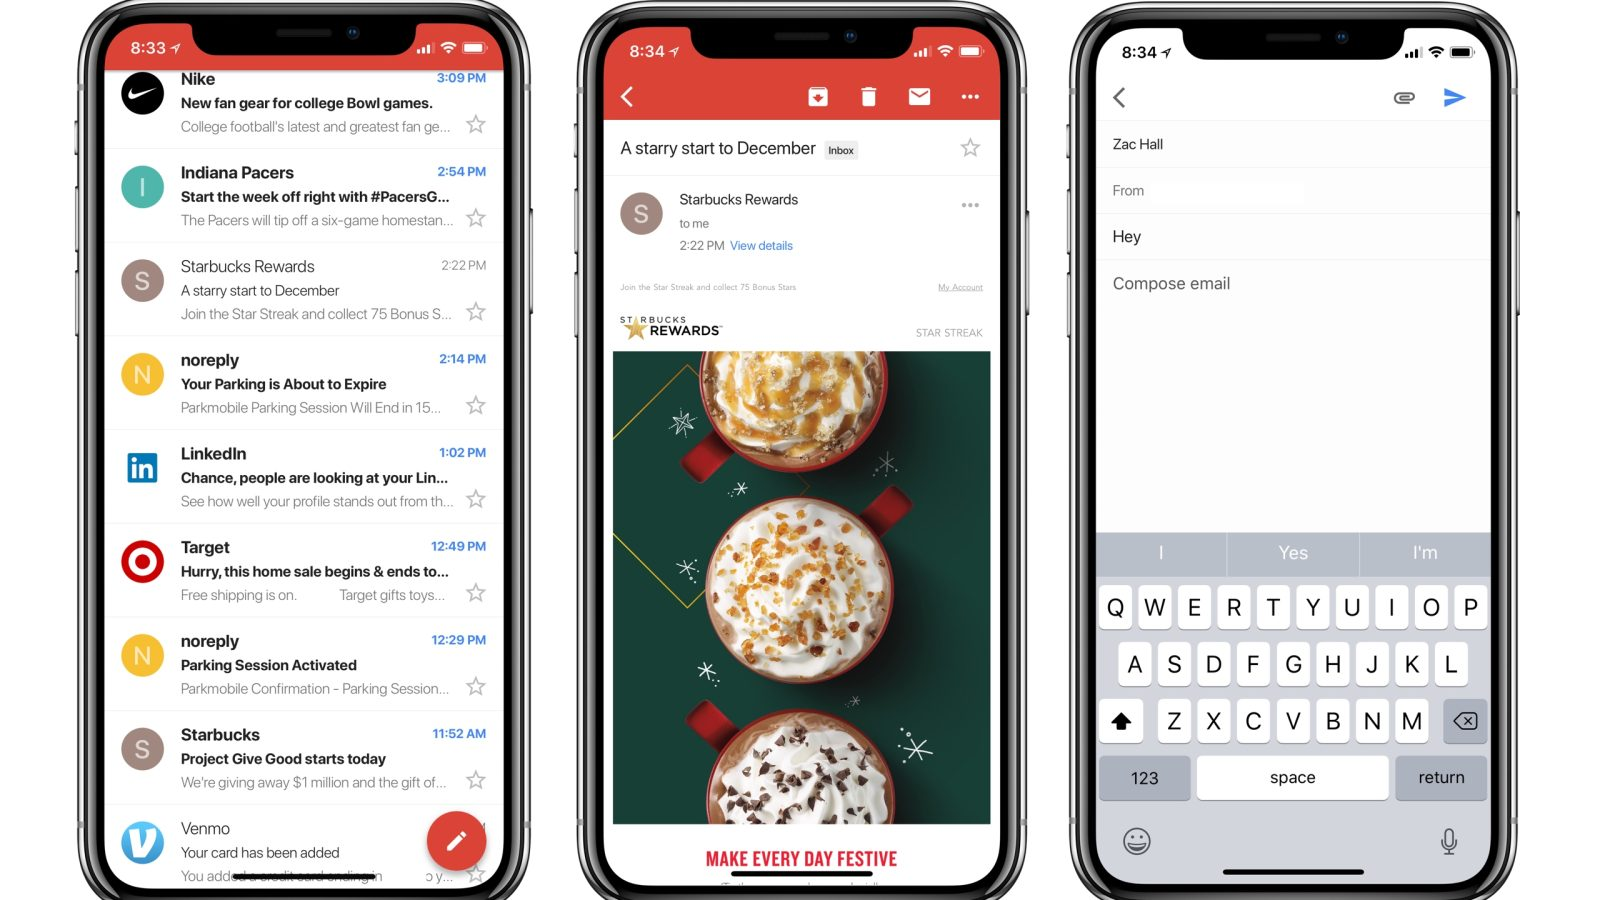 Gmail iOS app update brings iPhone X support, third-party email accounts